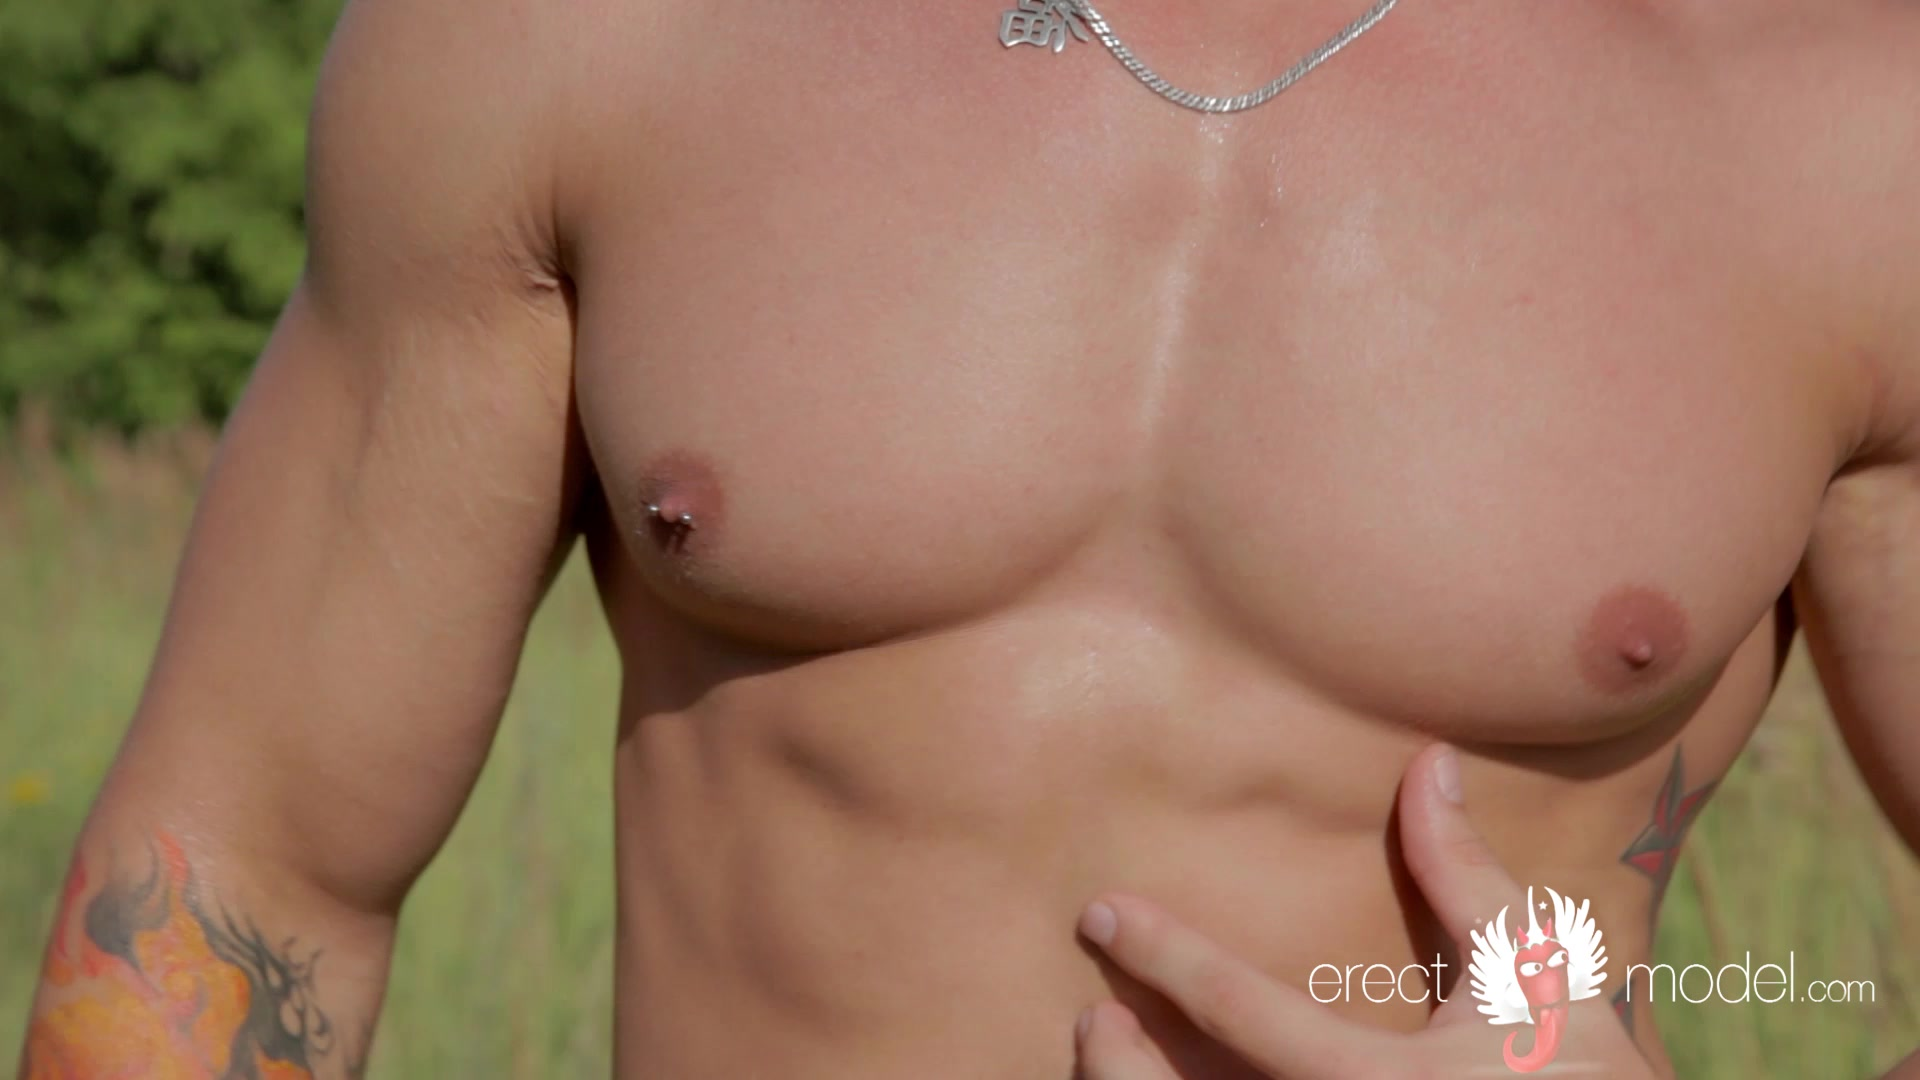 Nude baseball player with perfect body